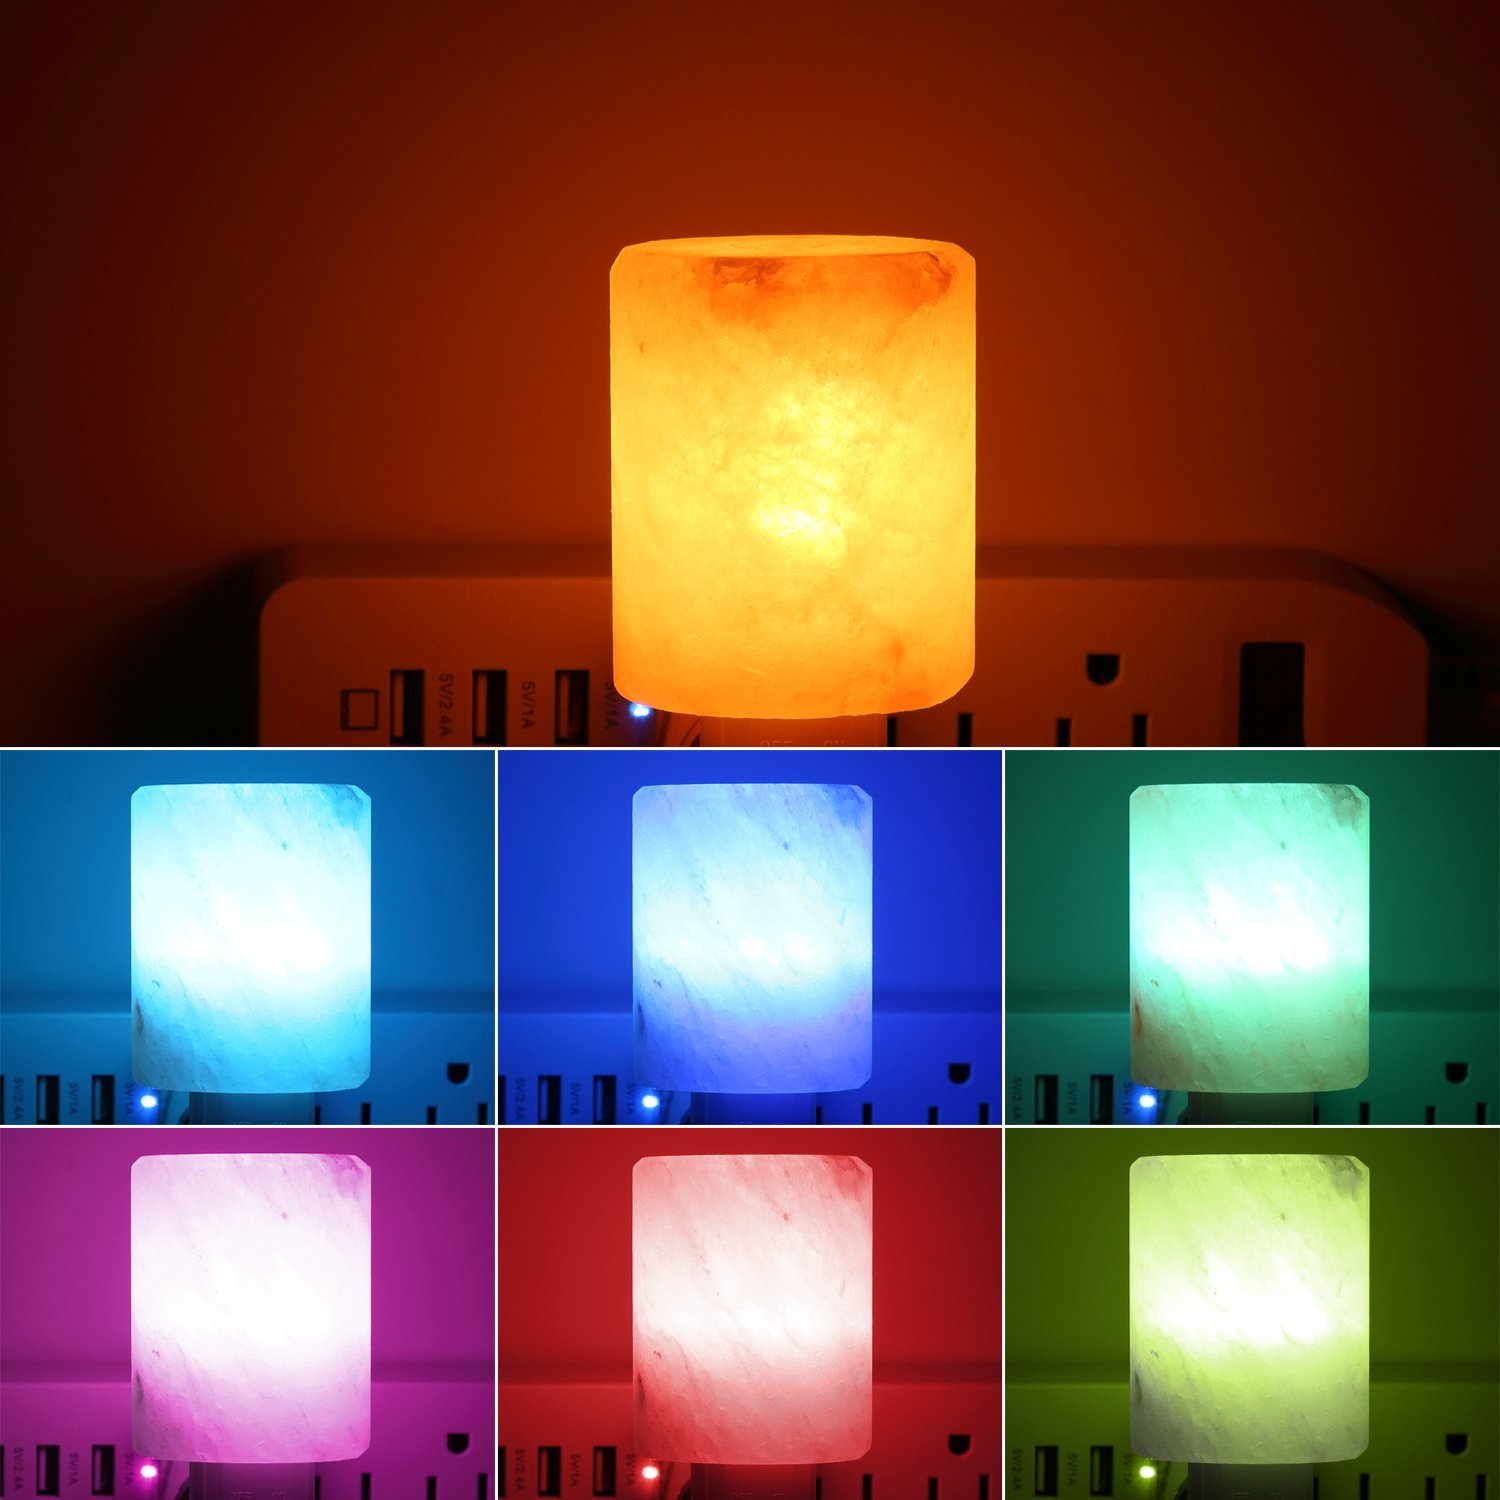 AMIR Salt Lamp, Natural Himalayan Crystal Salt Light with 2 Bulbs (1 Colorful Bulb), 11.2 Ounces Mini Hand Carved Night Light with UL-Approved Wall Plug for Air Purifying, Lighting and Decoration by AMIR (Image #3)